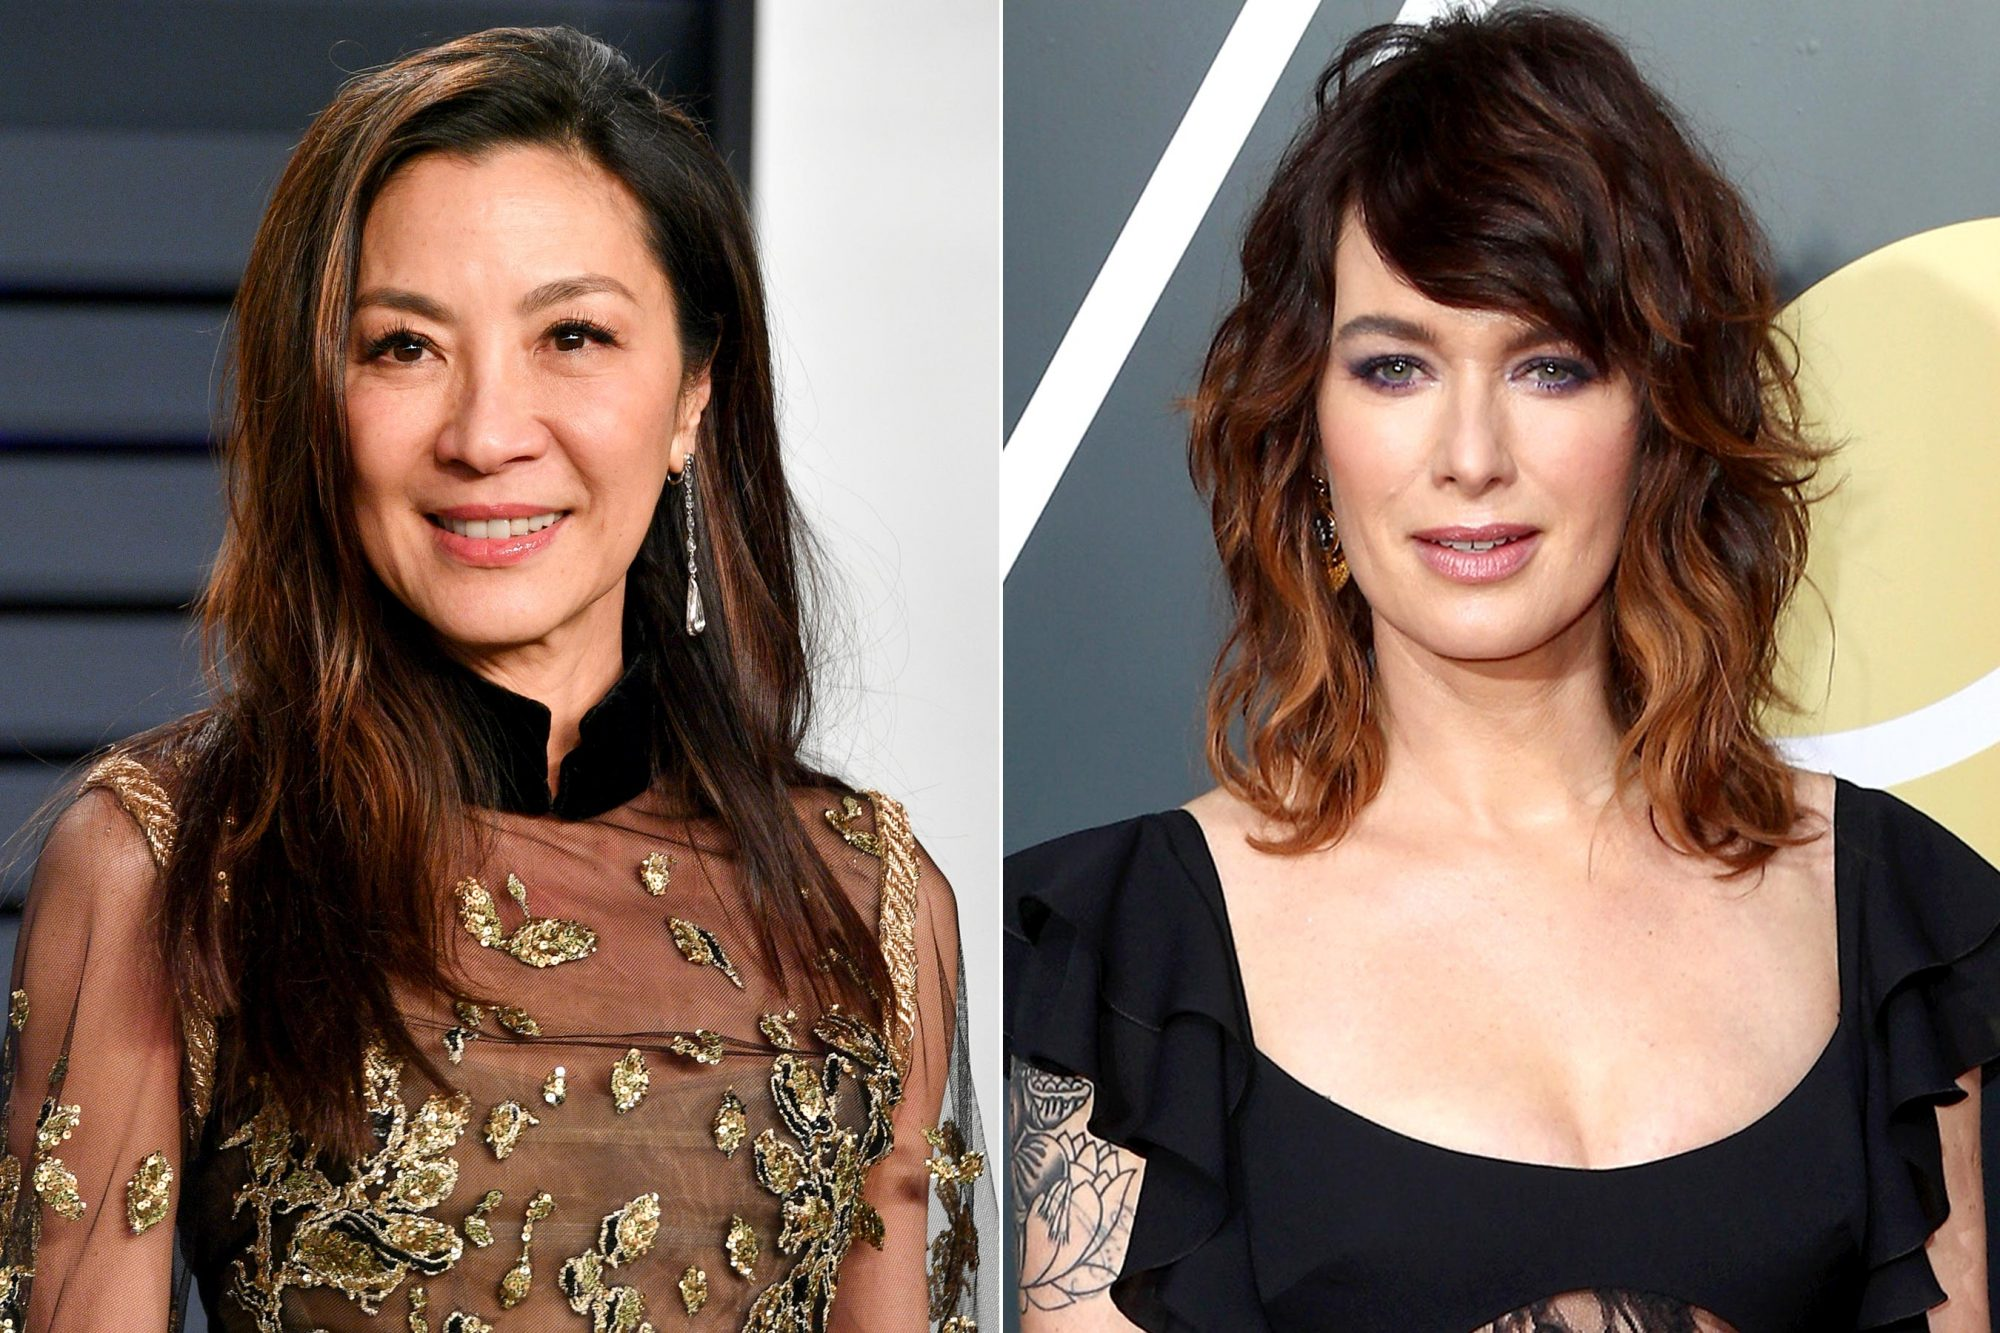 BEVERLY HILLS, CA - FEBRUARY 24: Michelle Yeoh attends the 2019 Vanity Fair Oscar Party hosted by Radhika Jones at Wallis Annenberg Center for the Performing Arts on February 24, 2019 in Beverly Hills, California. (Photo by Dia Dipasupil/Getty Images) BEVERLY HILLS, CA - JANUARY 07: Actor Lena Headey attends The 75th Annual Golden Globe Awards at The Beverly Hilton Hotel on January 7, 2018 in Beverly Hills, California. (Photo by Frederick M. Brown/Getty Images)